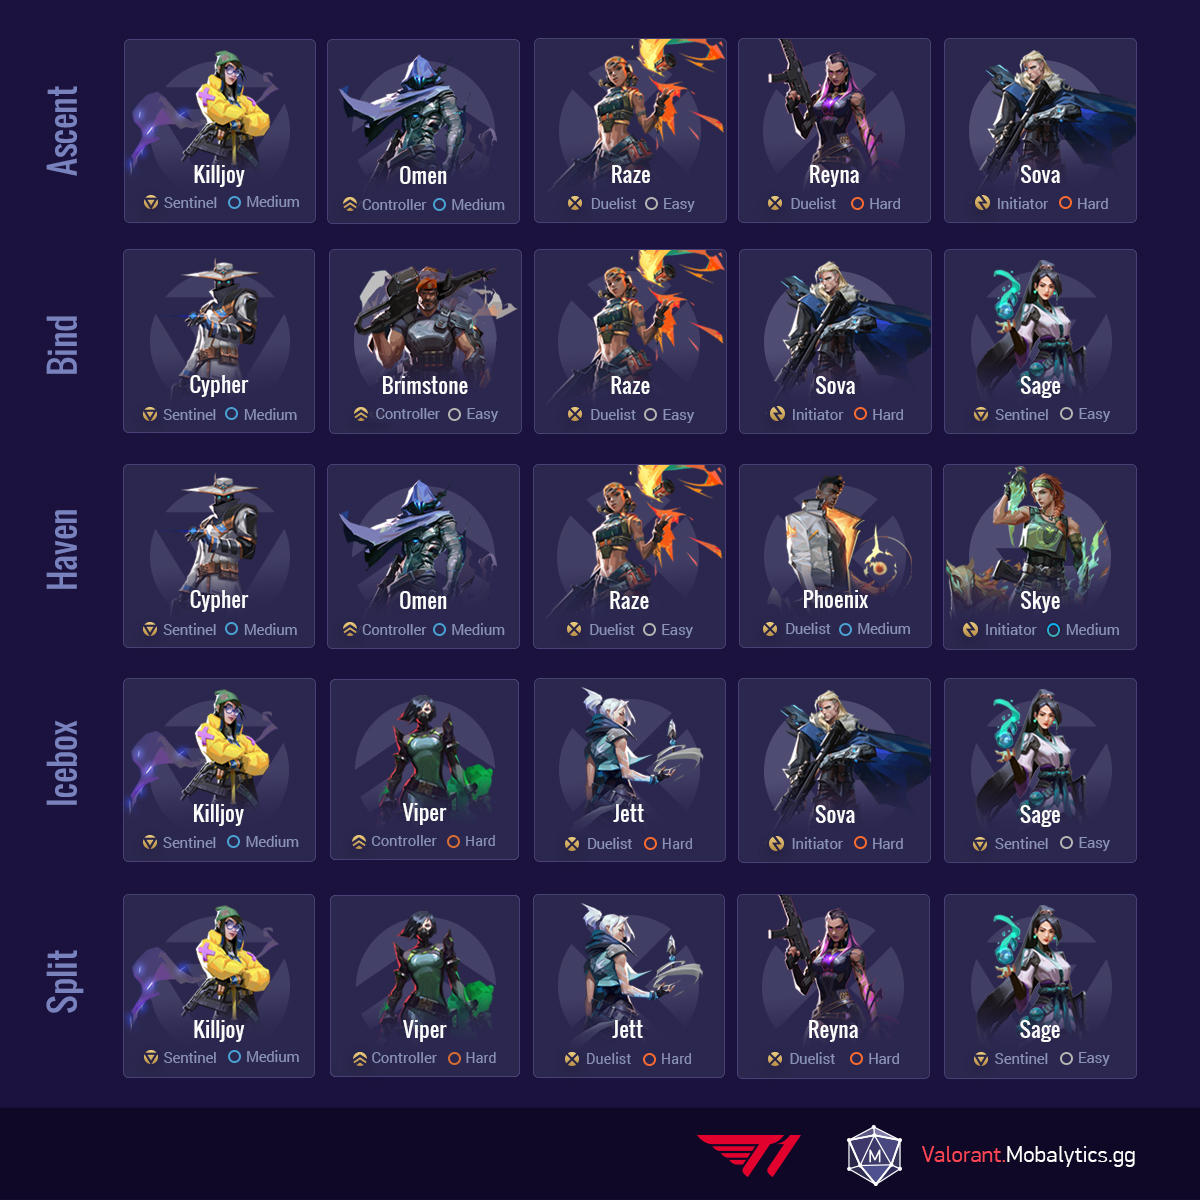 Valorant Patch 2.06 Team Comps by map